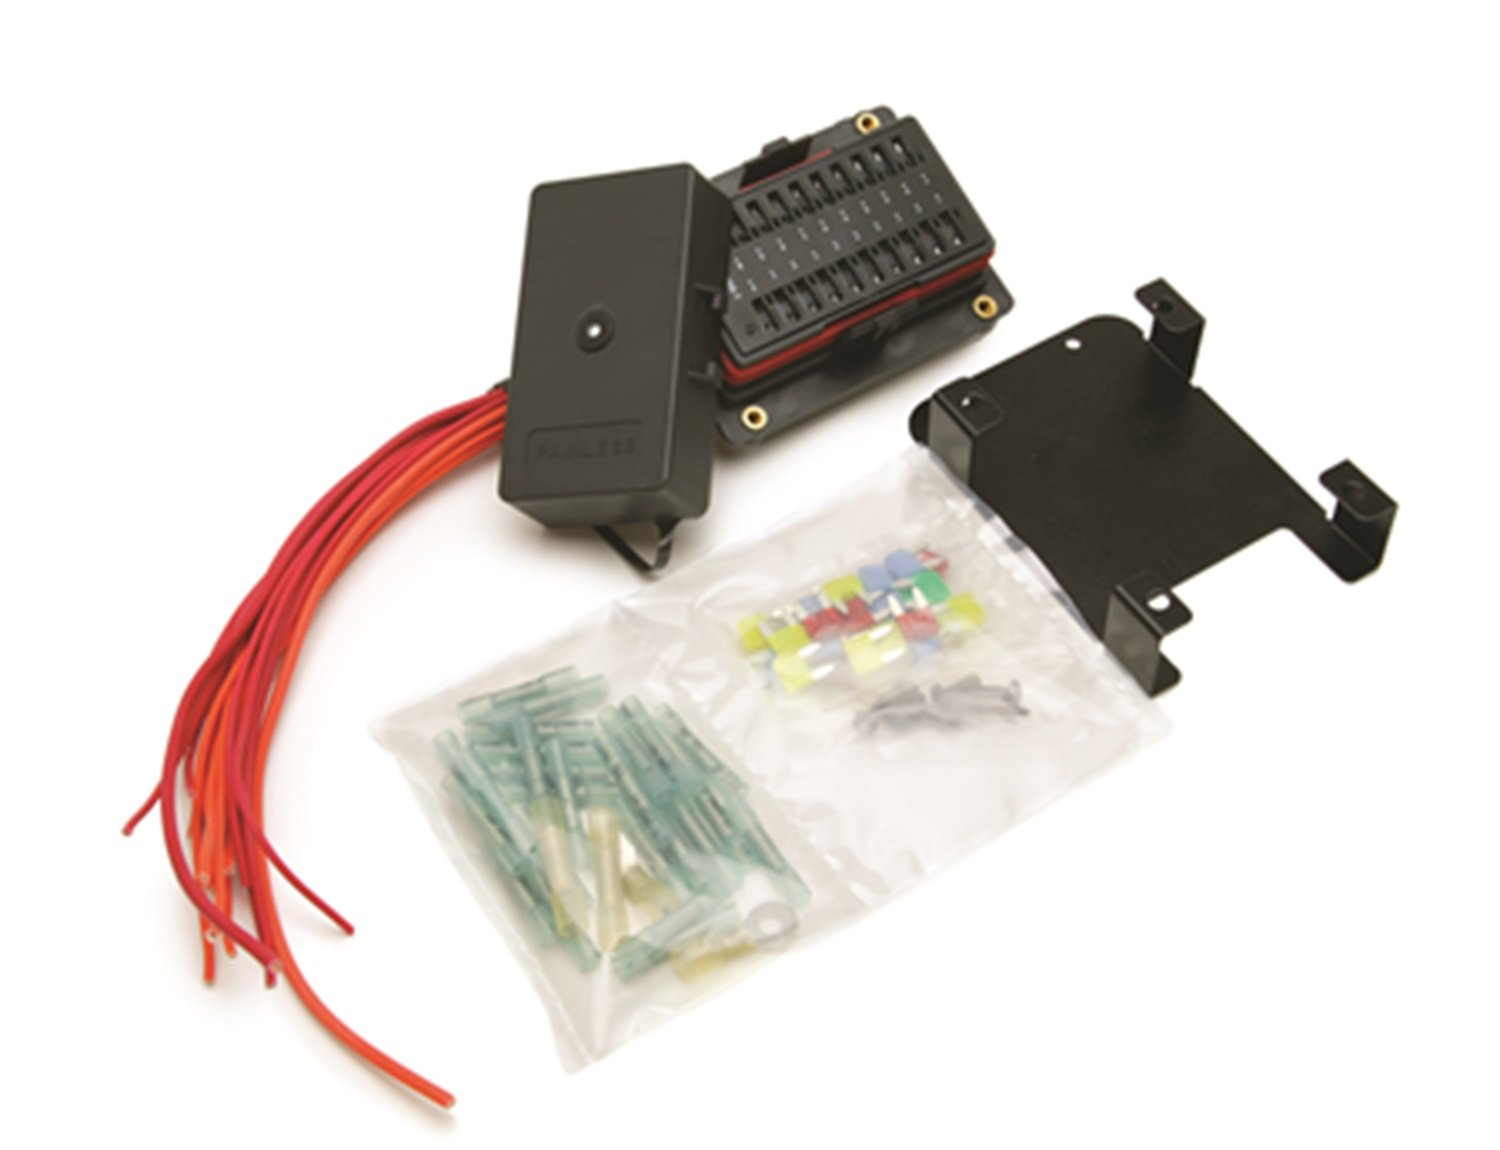 616pRAoZYlL._SL1500_ amazon com painless 30004 20 circuit fuse block kit automotive painless fuse box at bakdesigns.co